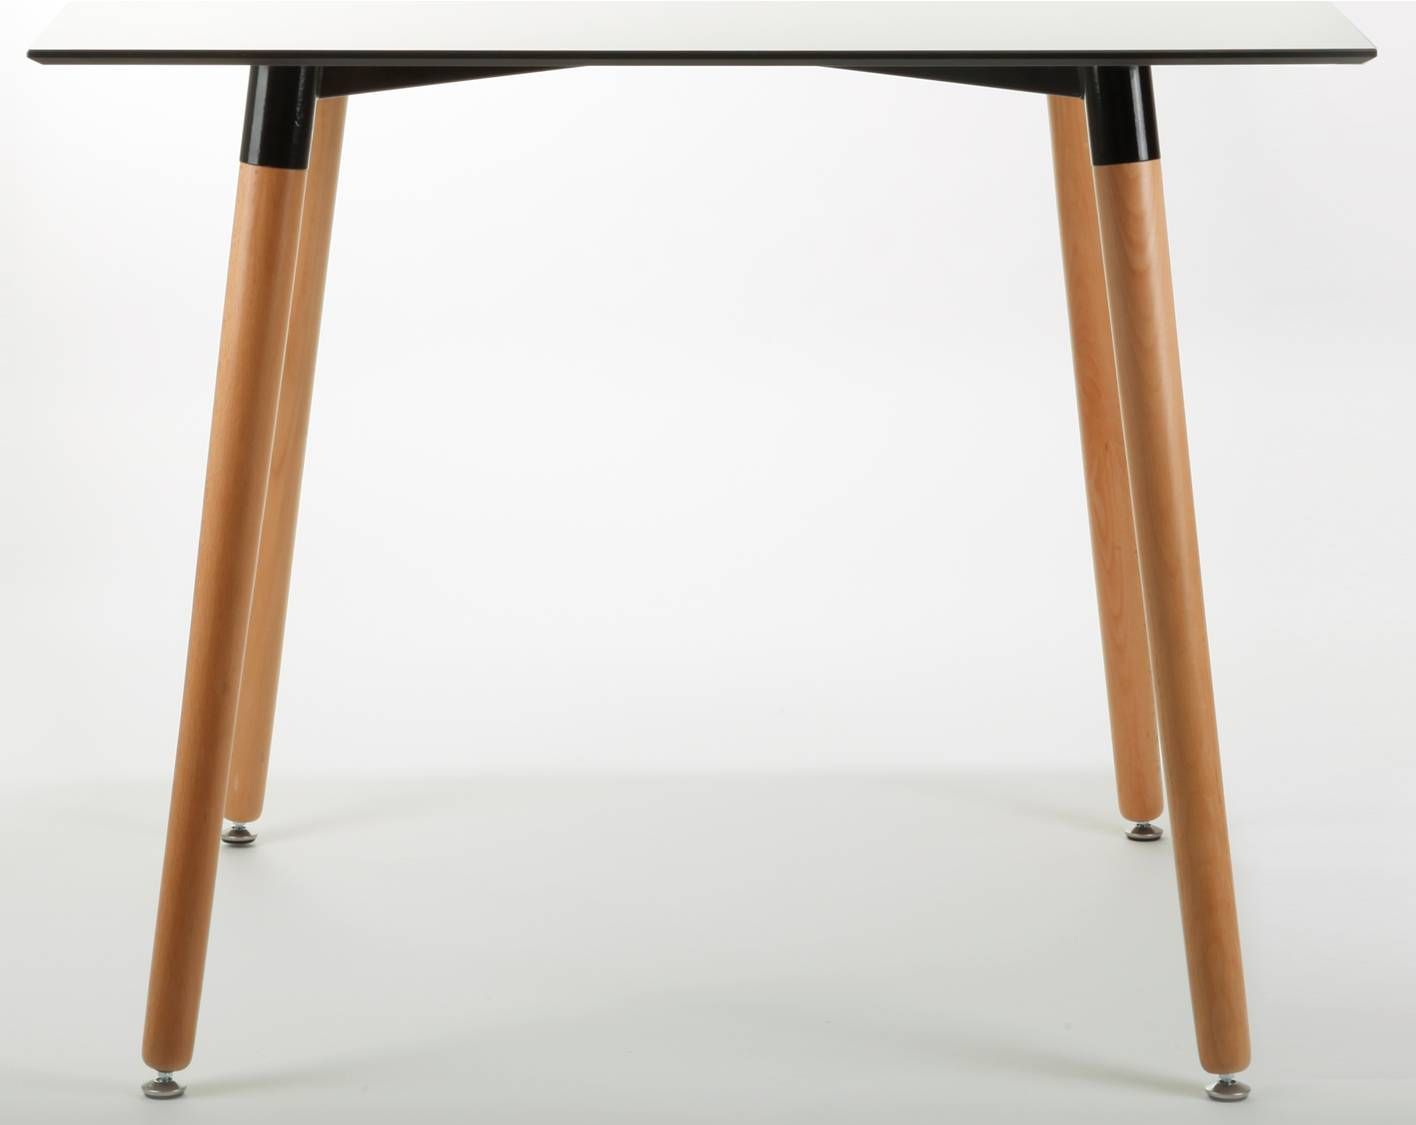 LAMAX table with wooden legs.